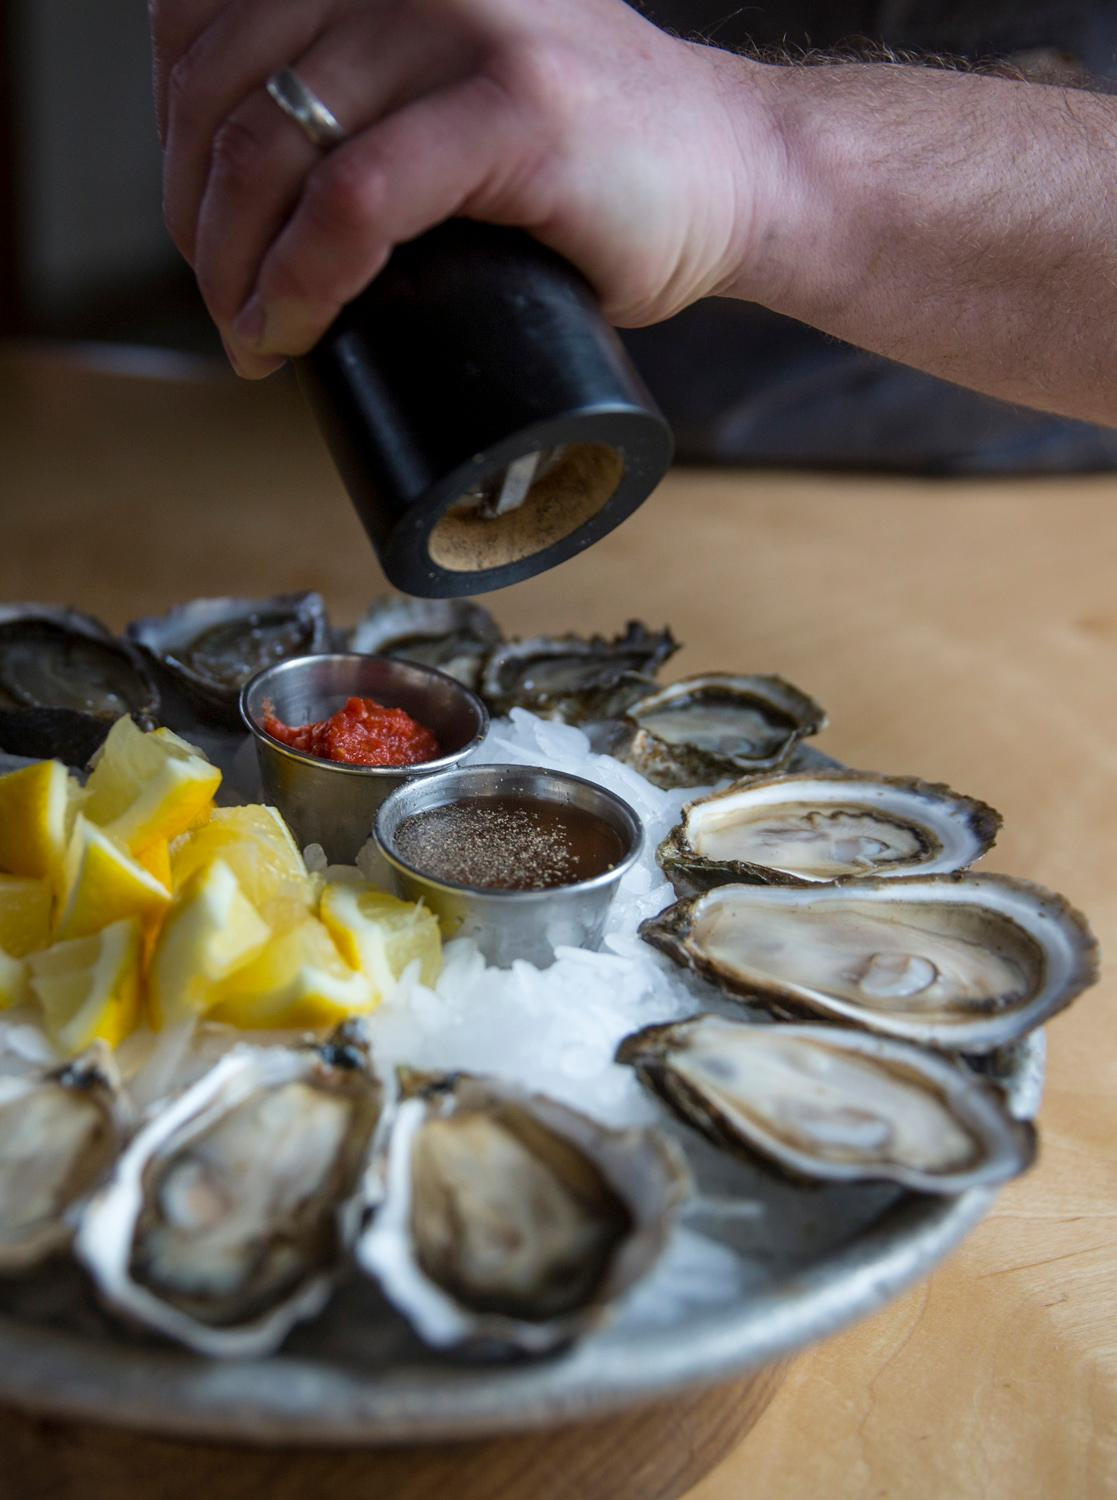 The Kumamoto, Fat Bastard, and Kusshi oysters freshly shucked at Taylor Shellfish's retail shop overlooking Samish Bay, located at 2182 Chuckanut Dr, in Bow, Washington. (Sy Bean / Seattle Refined)